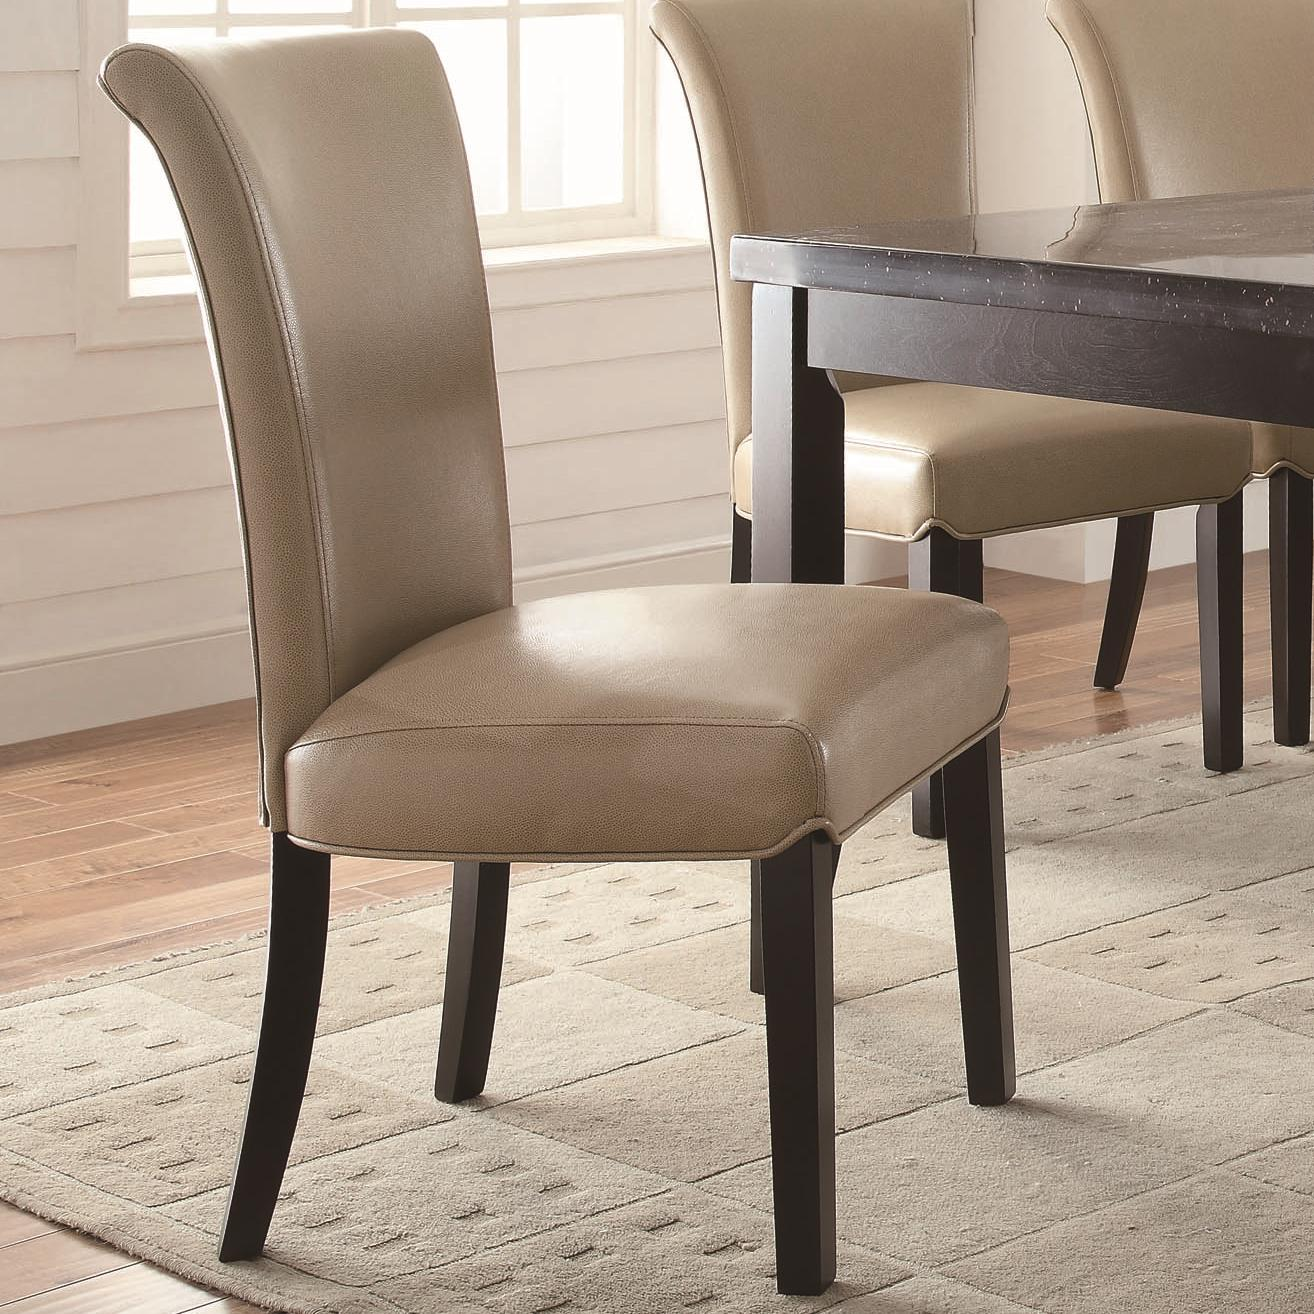 Taupe Dining Chairs Coaster Newbridge 102883 Upholstered Taupe Side Chair With